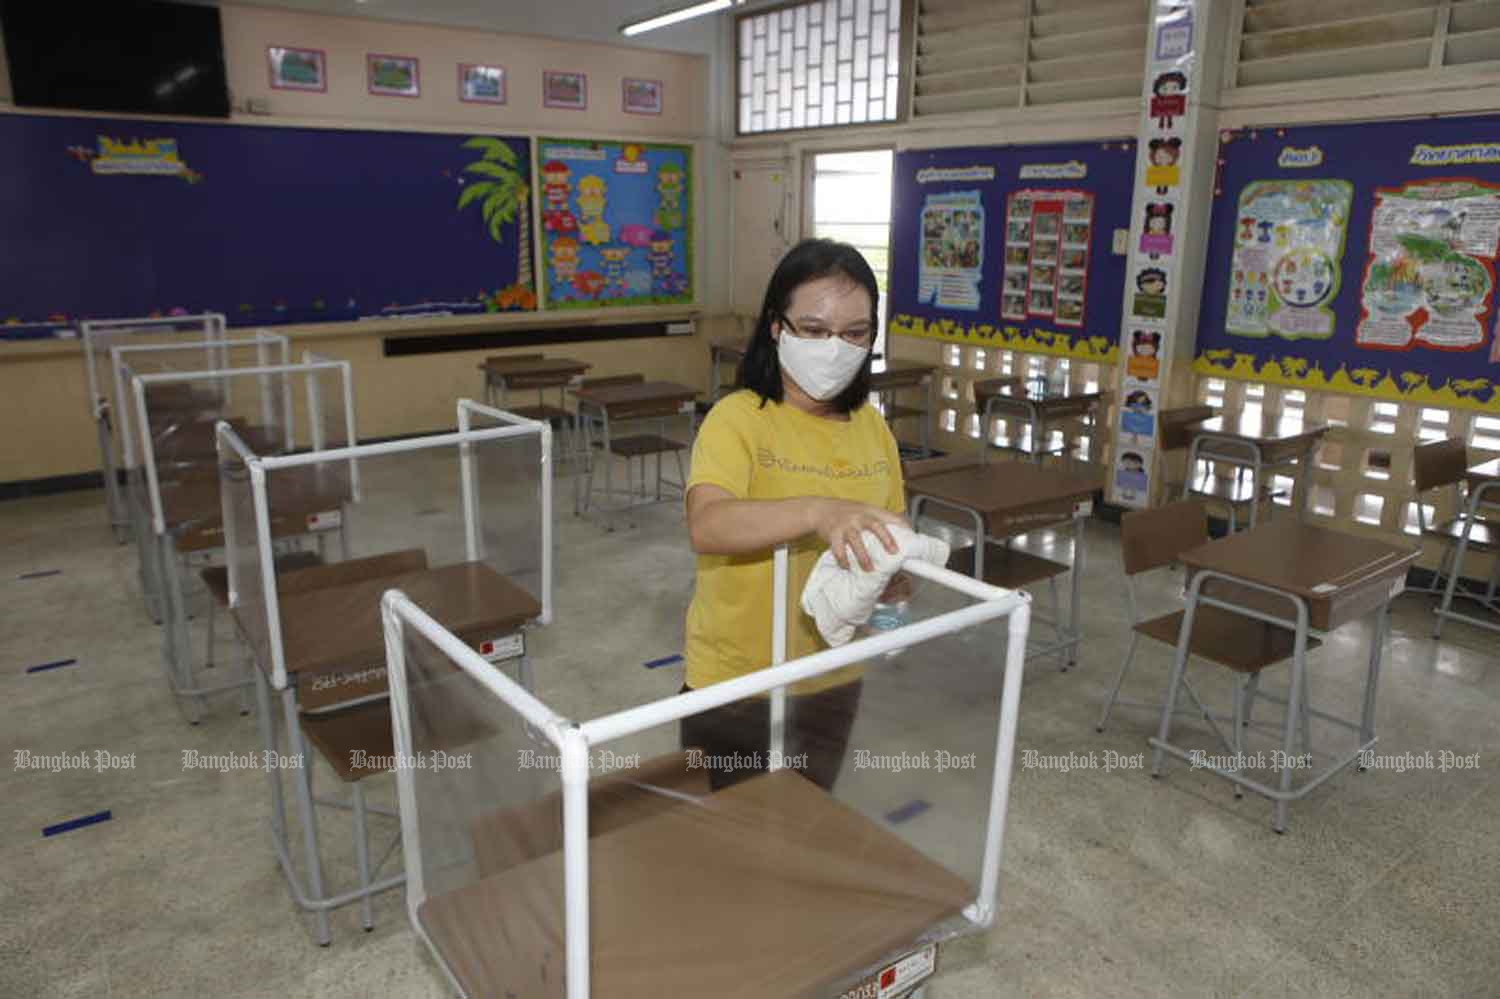 A member of staff at Or-ngern School in Bangkok's Sai Mai district cleans student cubicles. Plastic see-through partitions have been installed on tables in the cafeteria to keep students distanced from one another. (Photo: Nutthawat Wicheanbut)